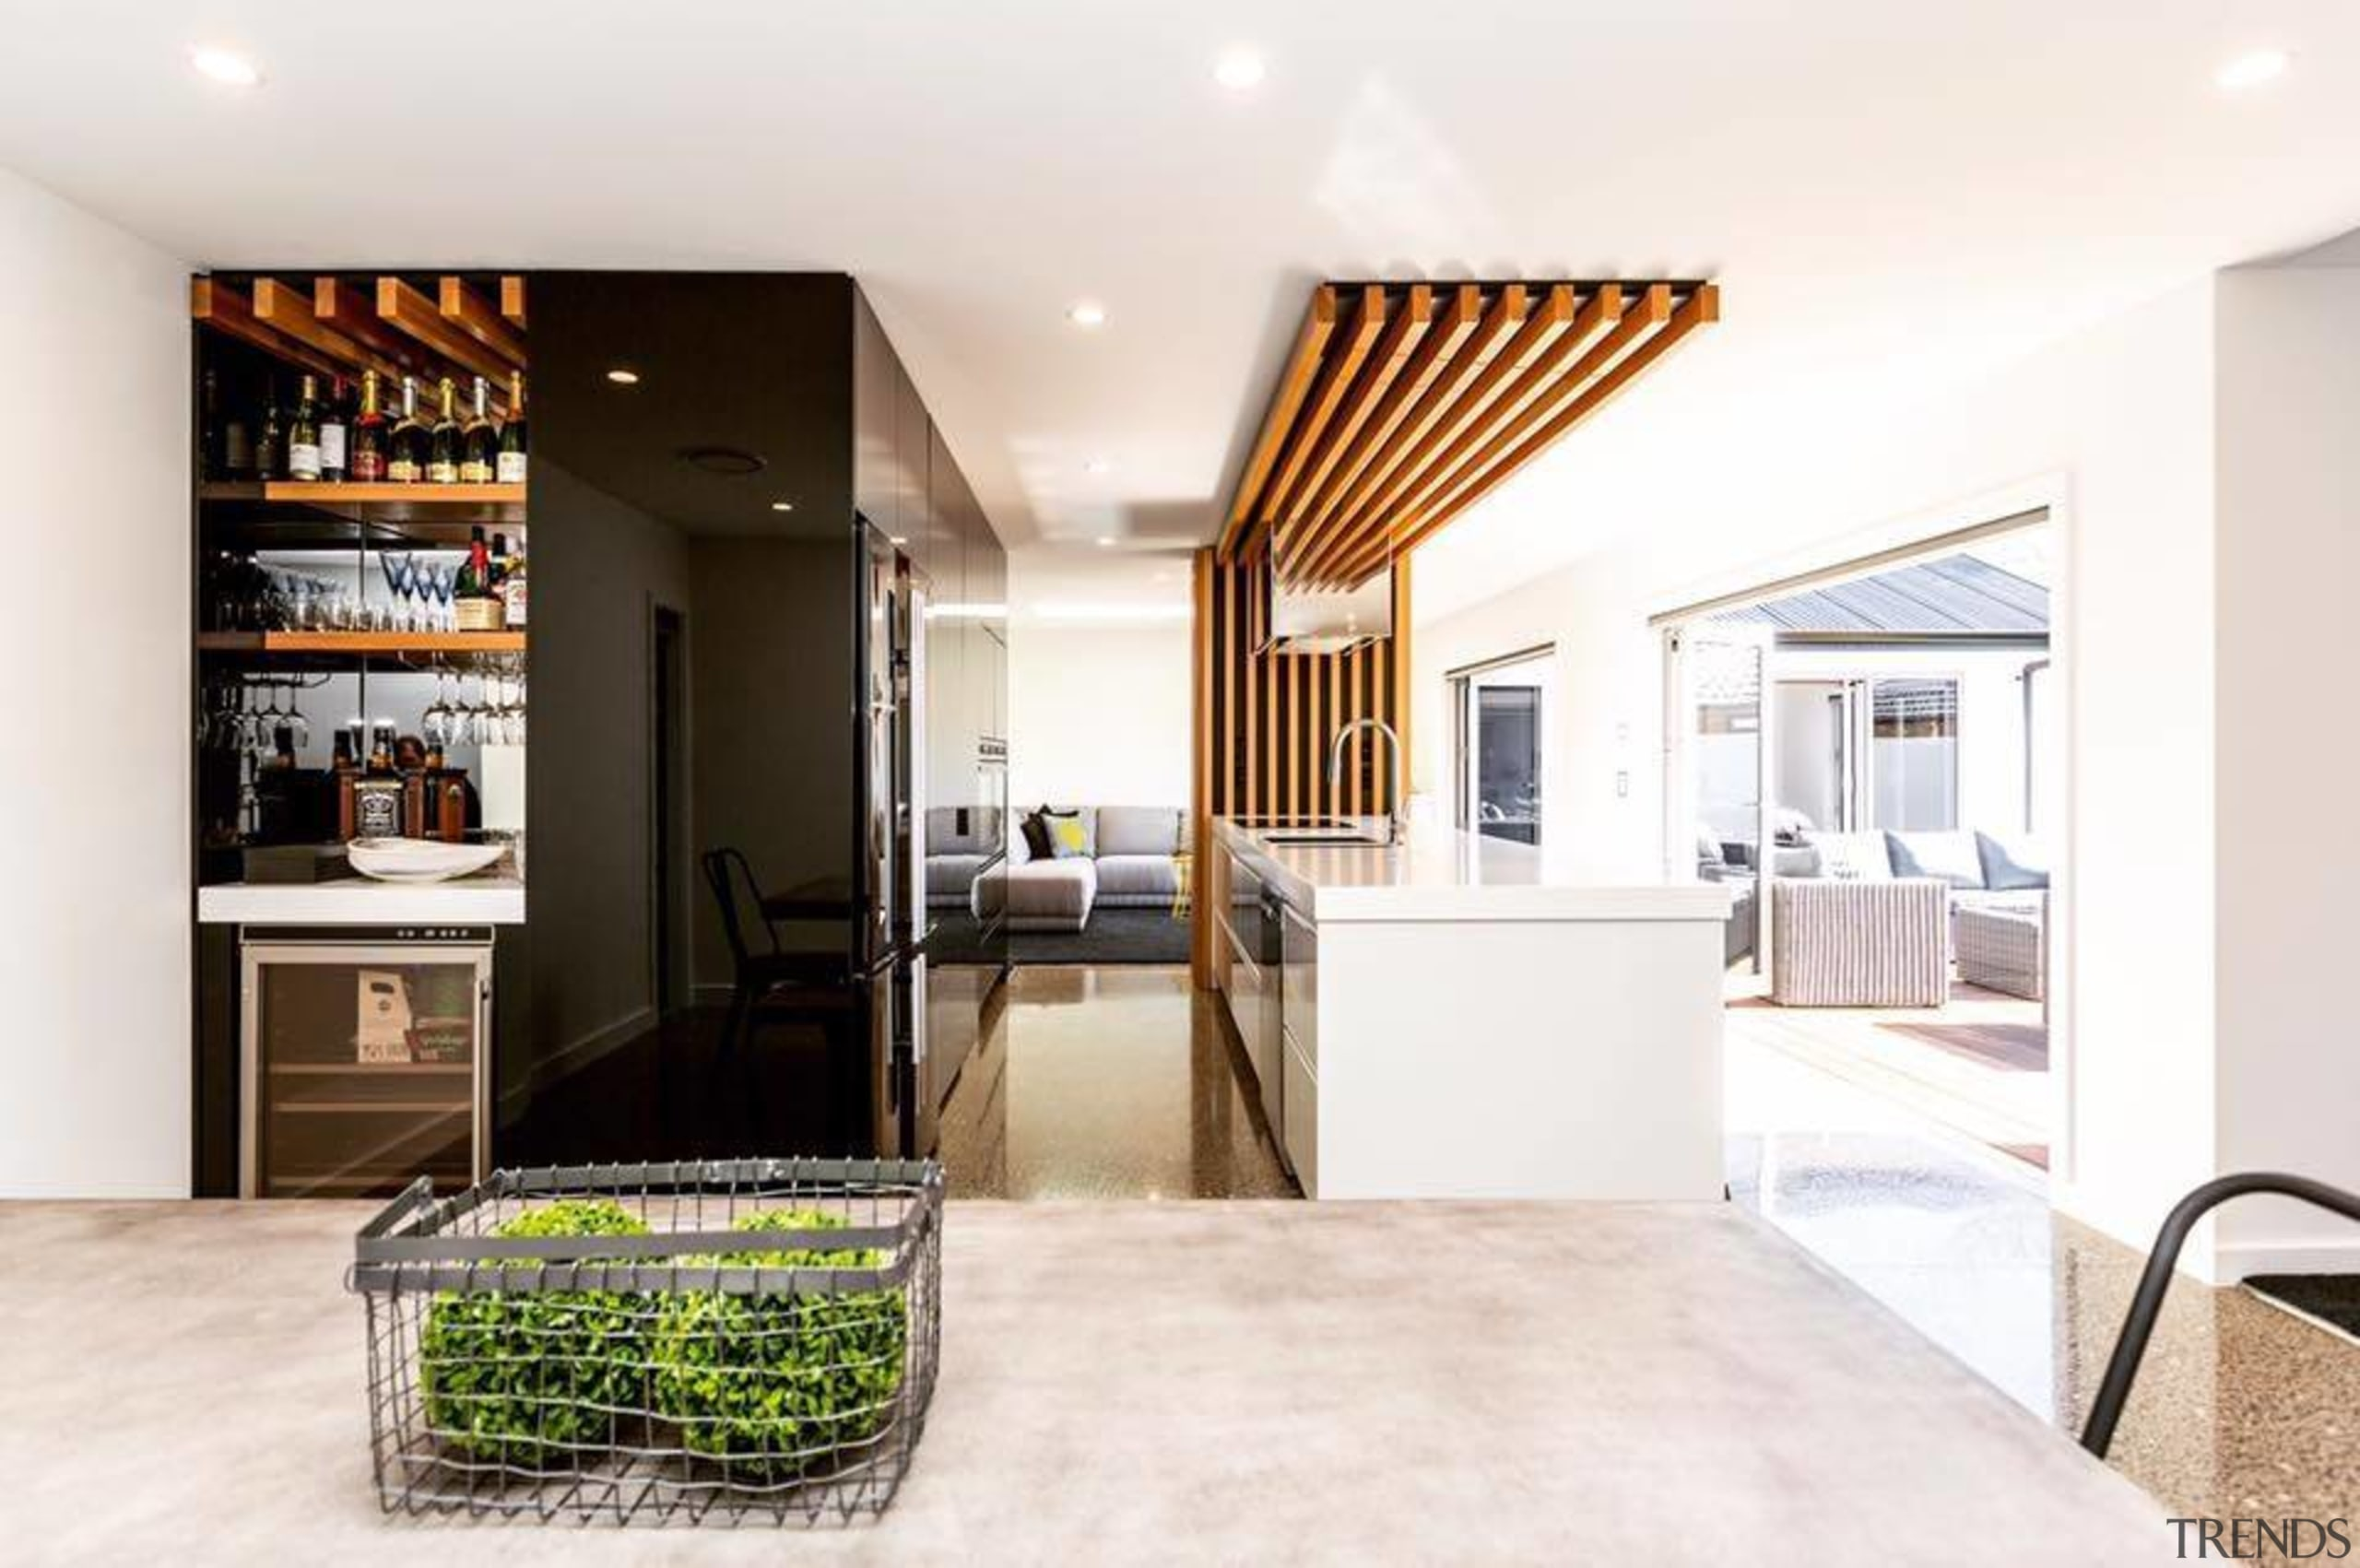 Rowson Kitchen & Joinery - Rowson Kitchen & ceiling, interior design, living room, property, real estate, white